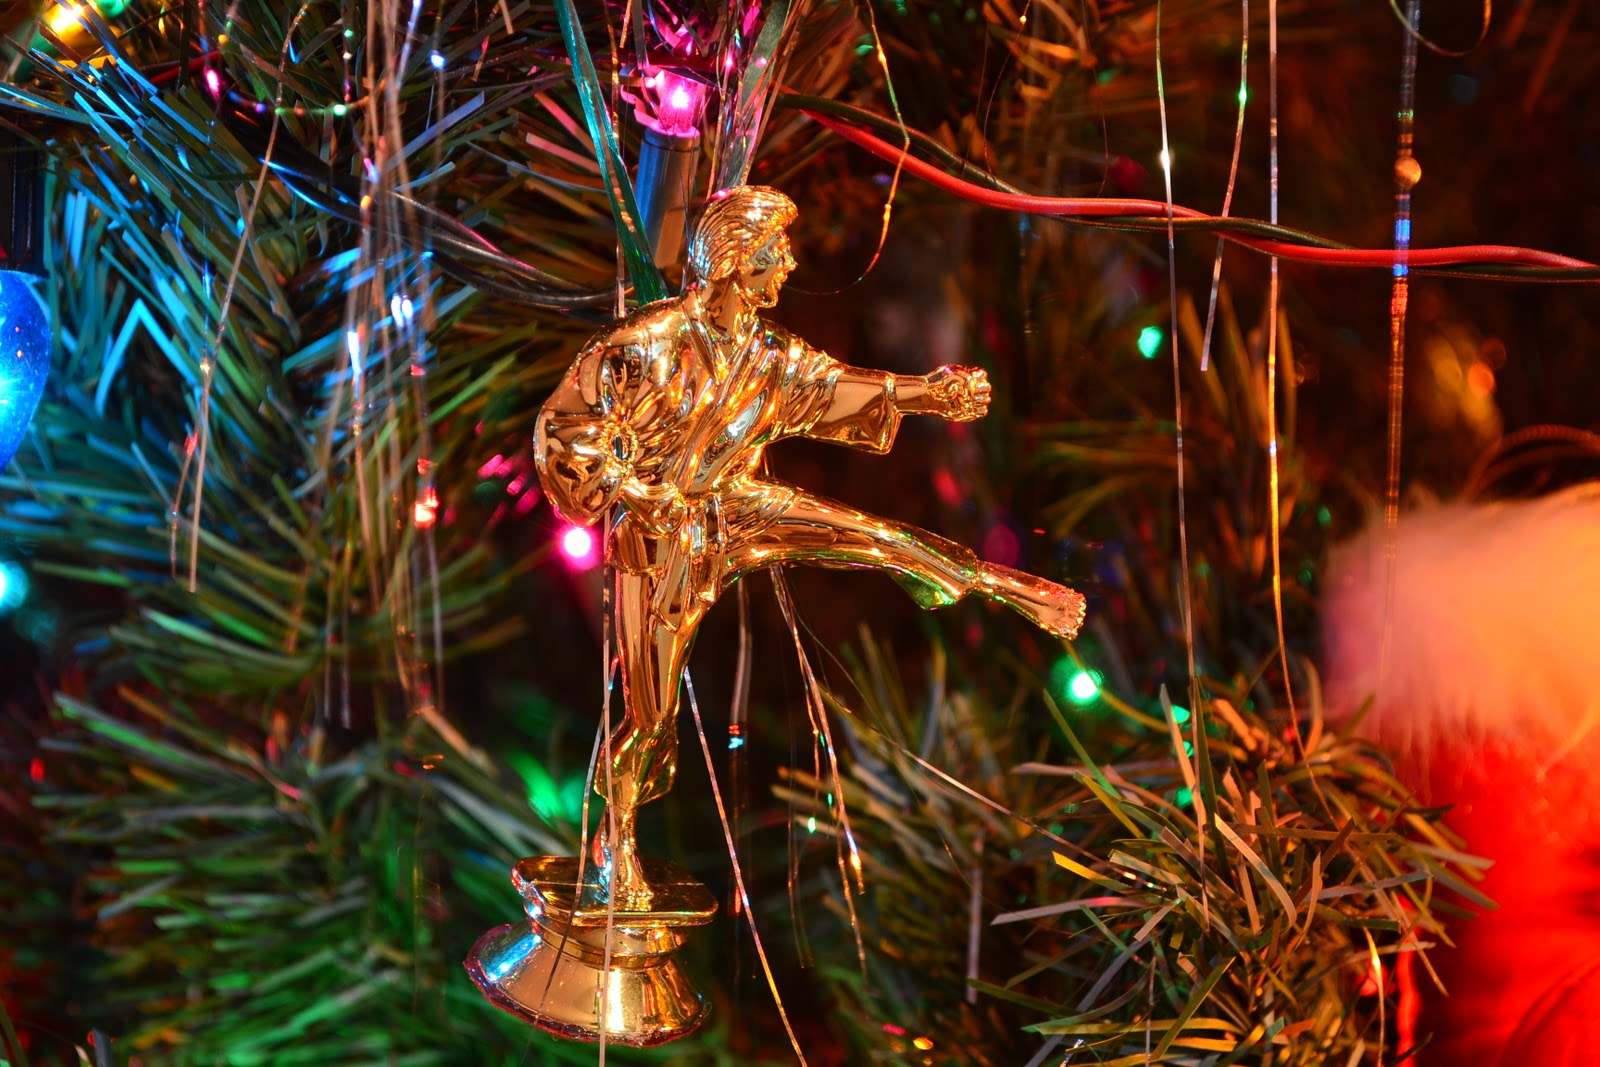 Karate christmas ornament - Suicidal Trophies And Christmas Ornaments